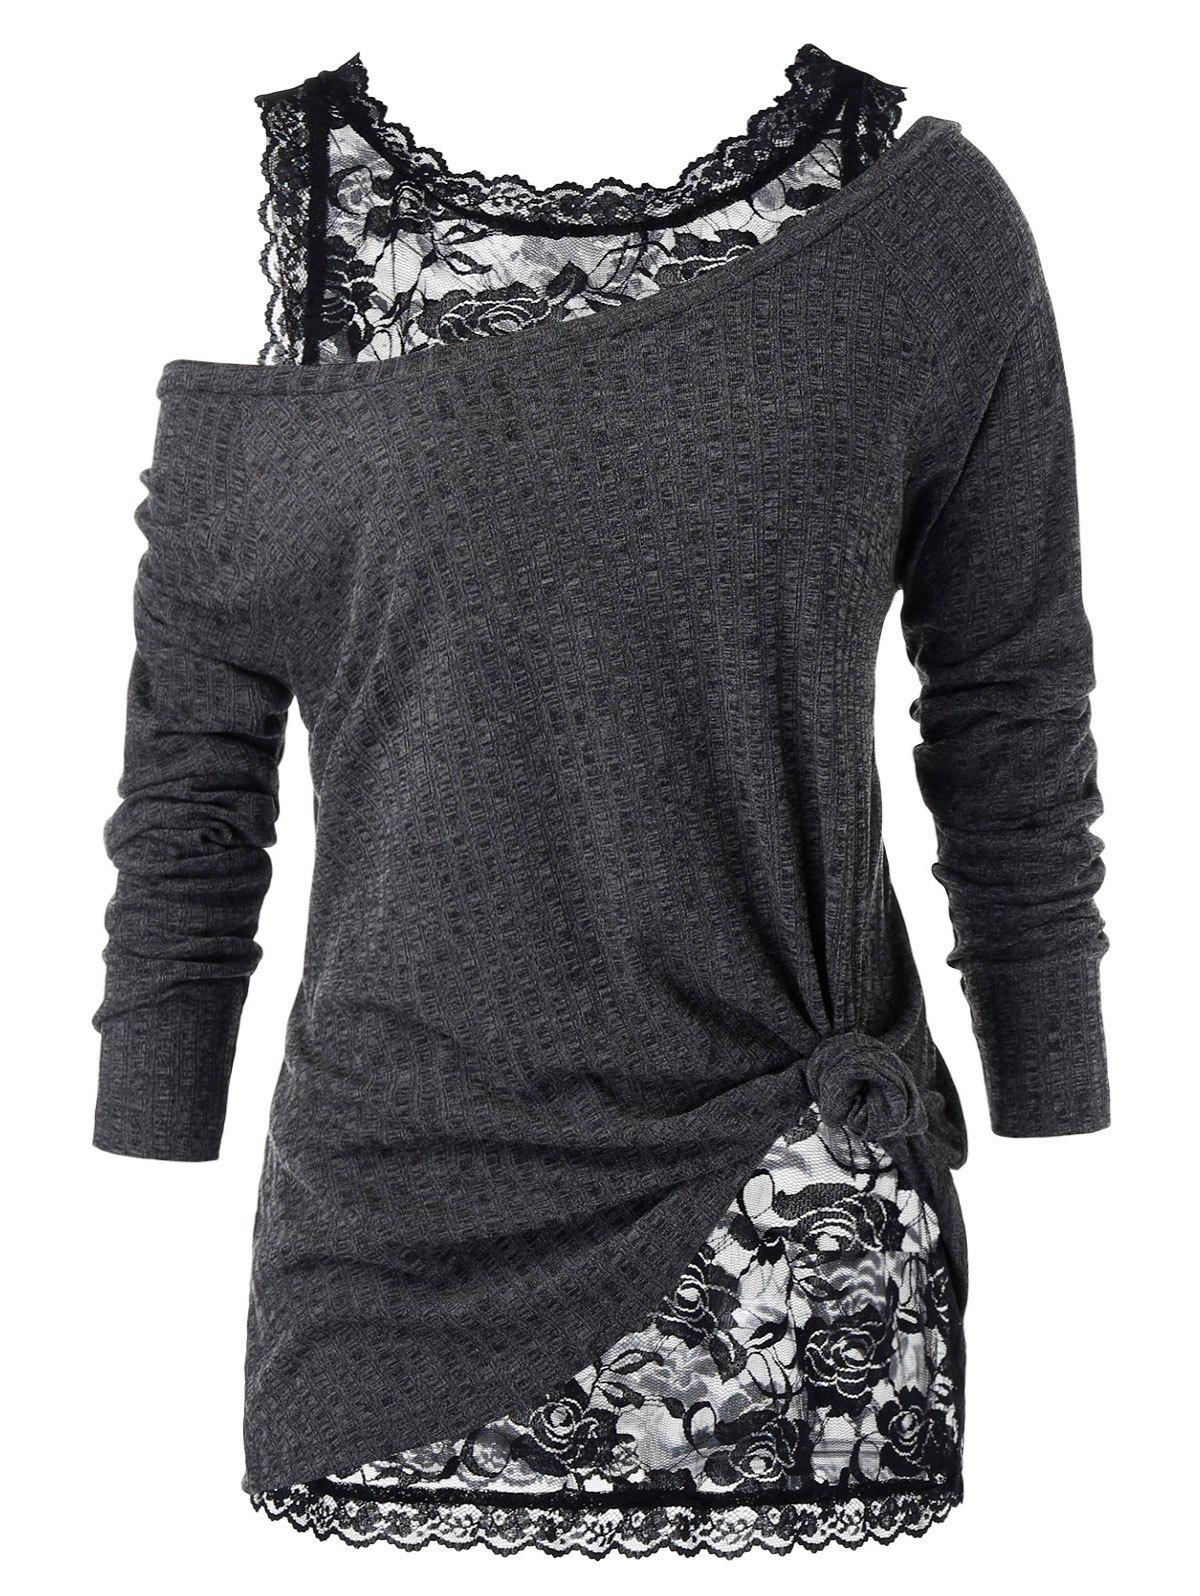 Plus Size Skew Neck Sweater with Floral Lace Top - BLACK 5X